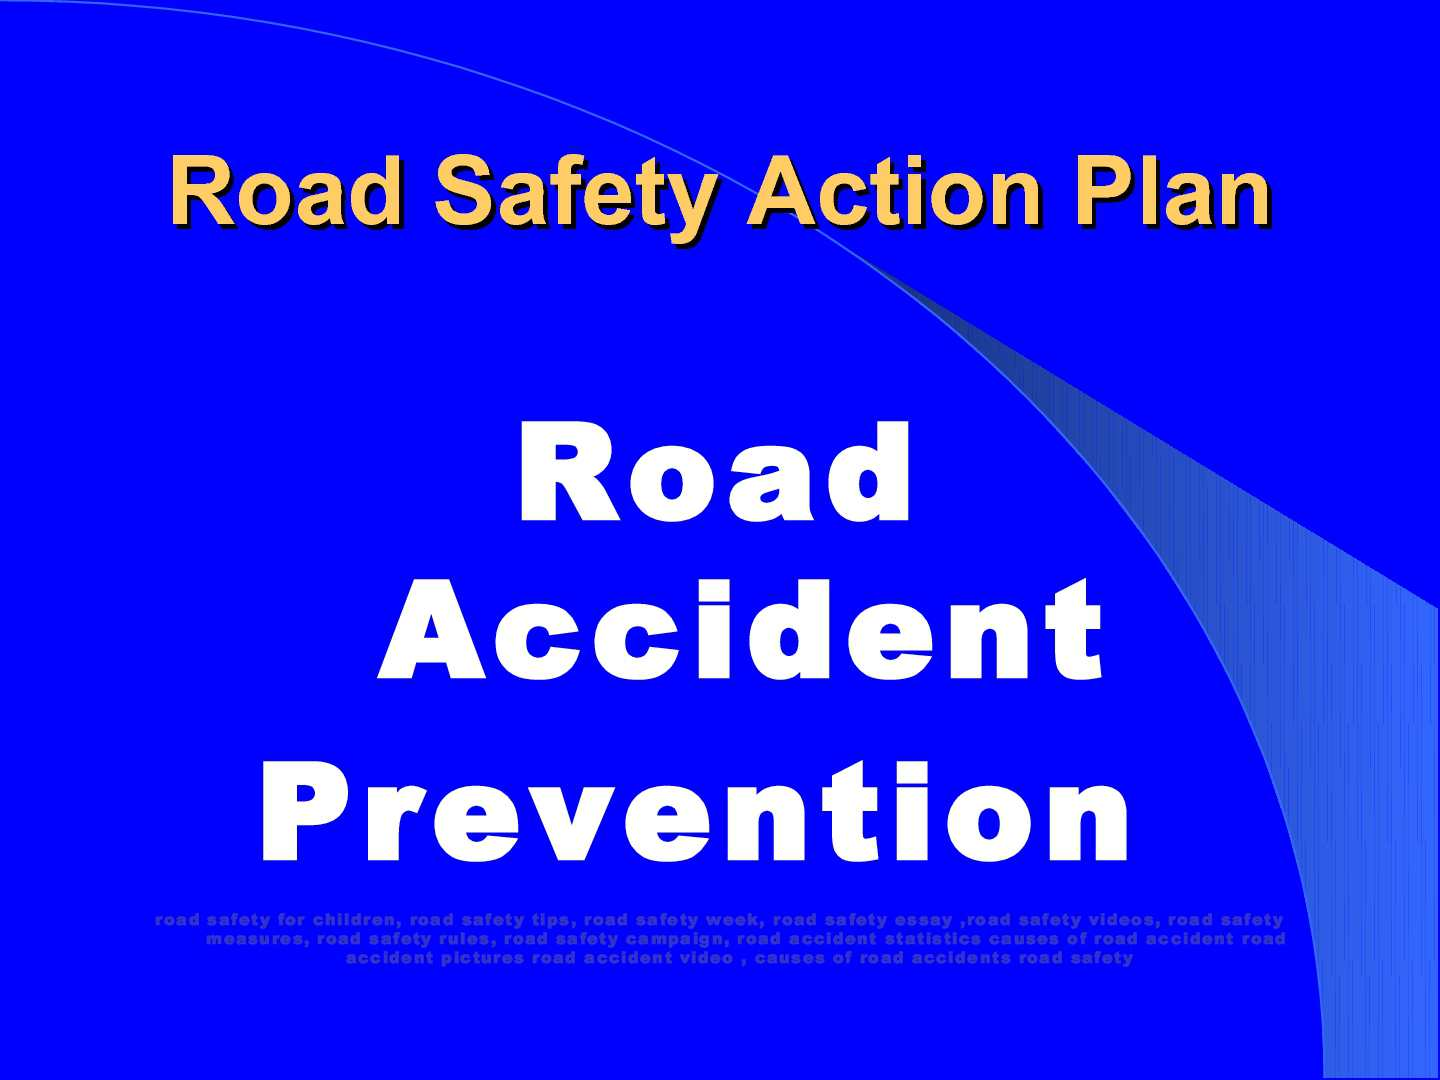 calam eacute o how to prevent road accidents powerpoint presentation calameacuteo how to prevent road accidents powerpoint presentation photos